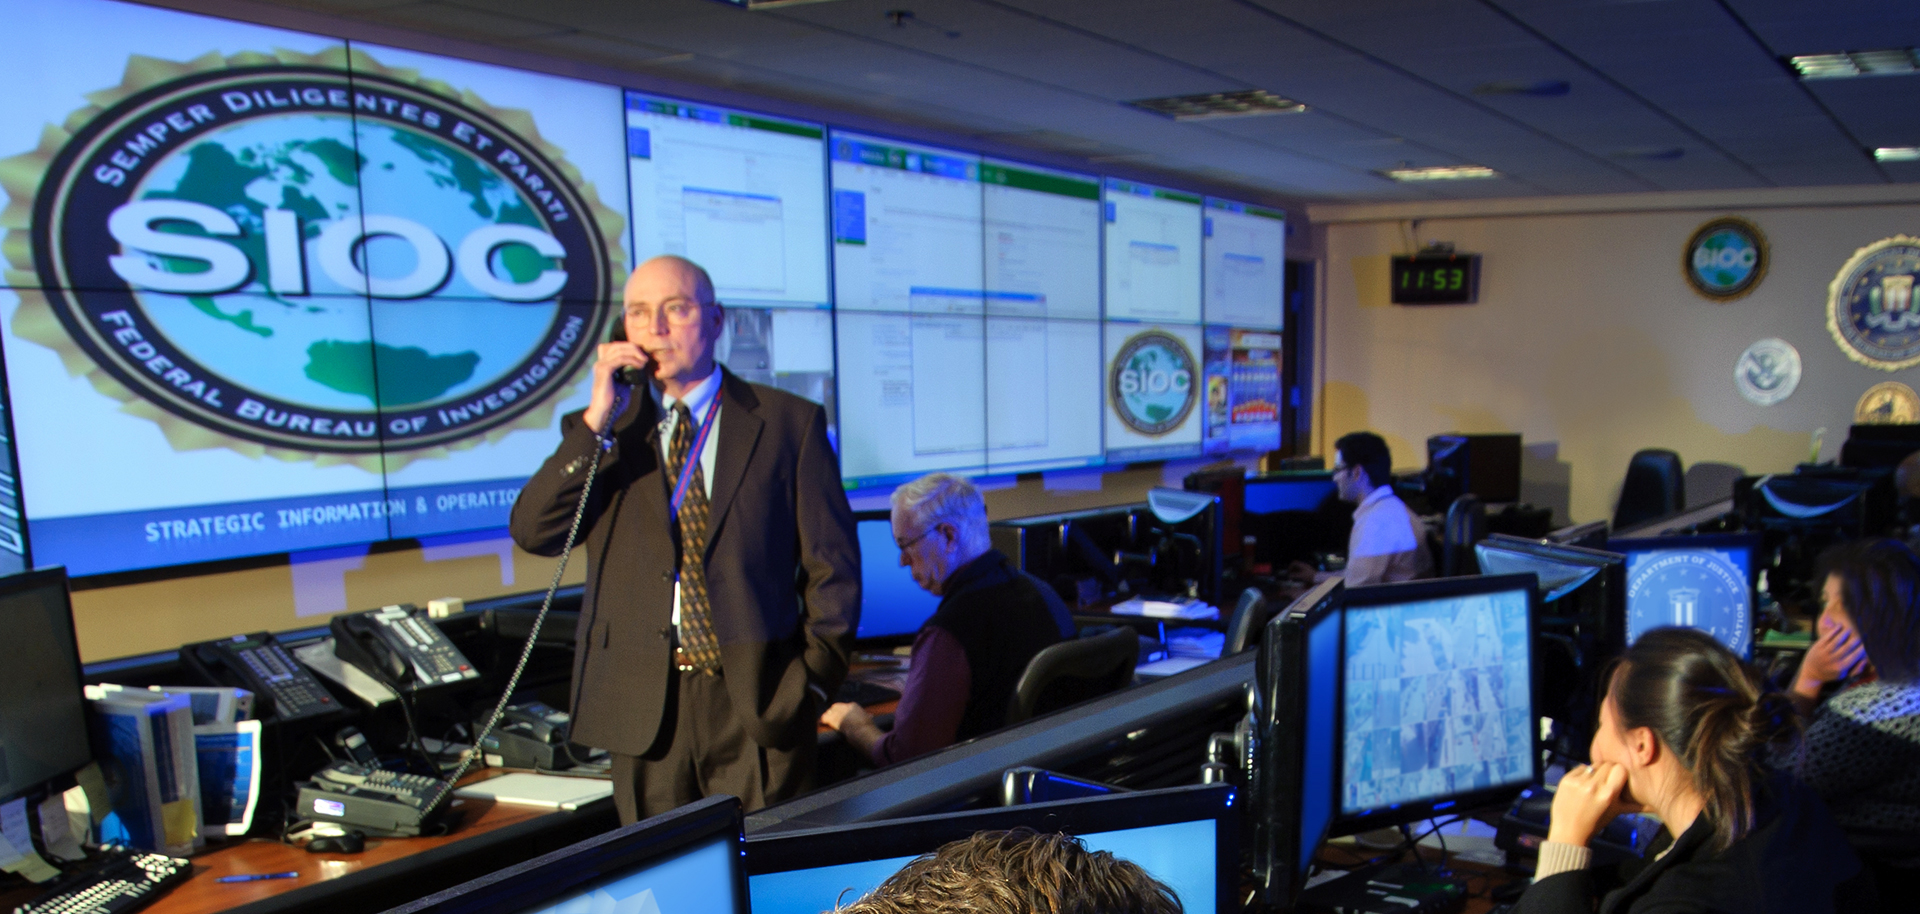 Strategic Information Amp Operations Sioc Fbi